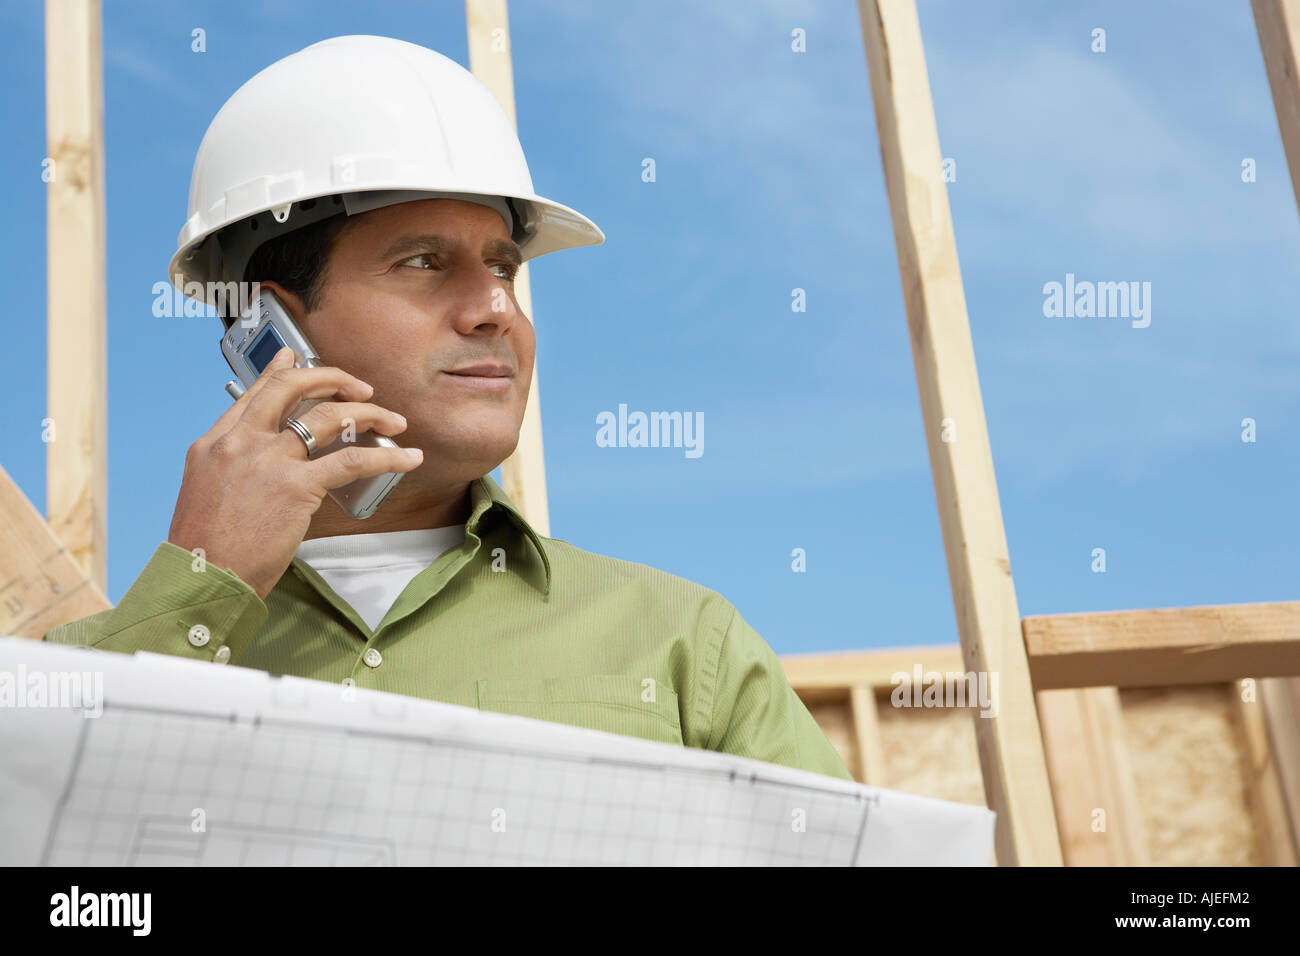 Construction Worker wearing hard hat, Using Cell Phone on construction site - Stock Image